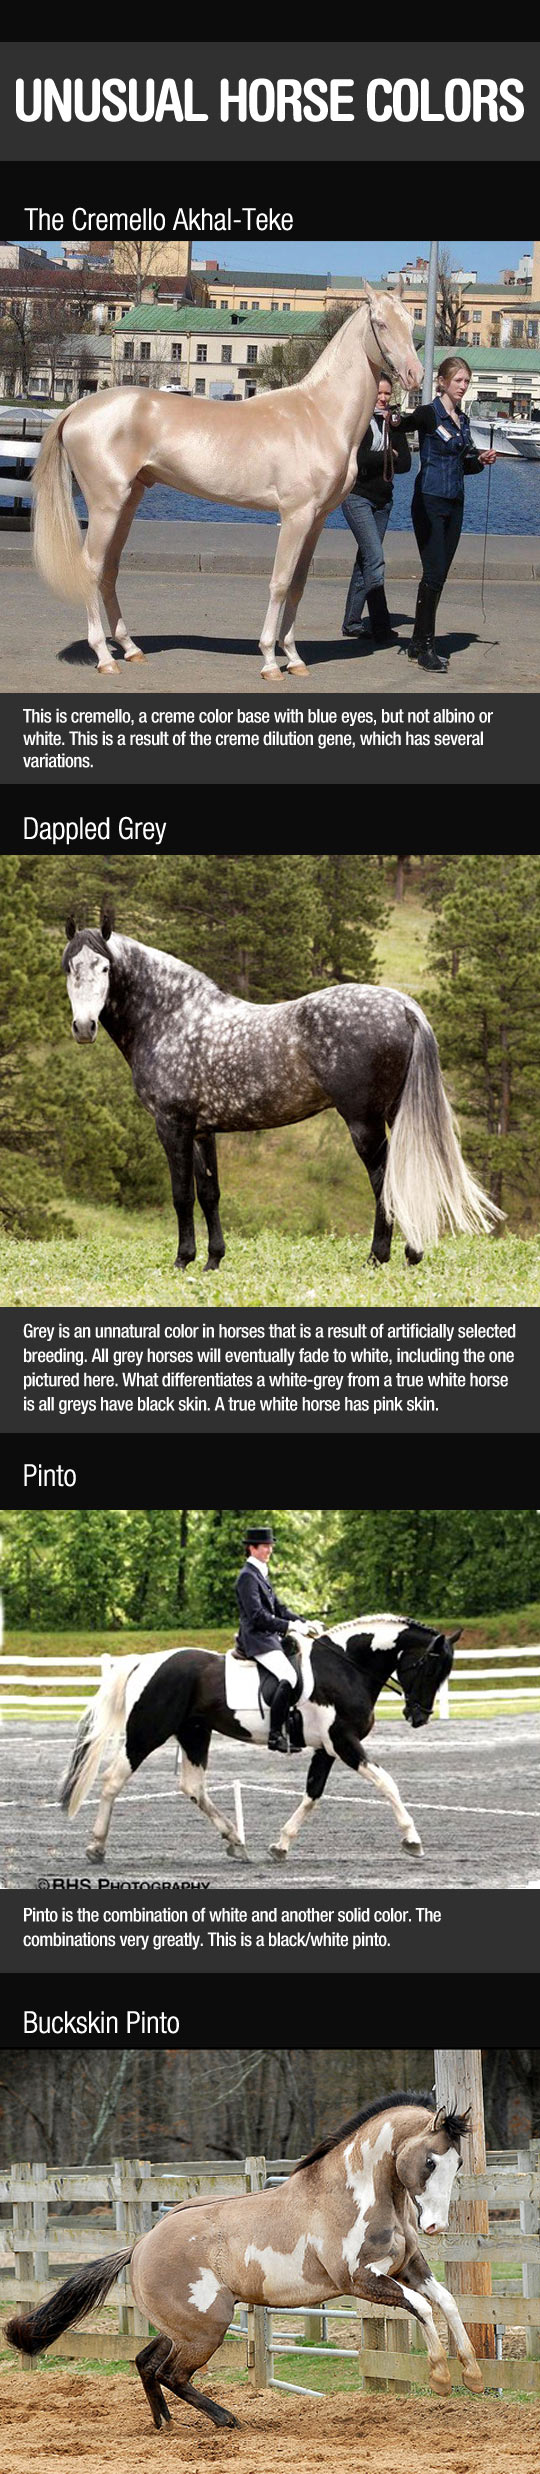 Unusual Horse Colors